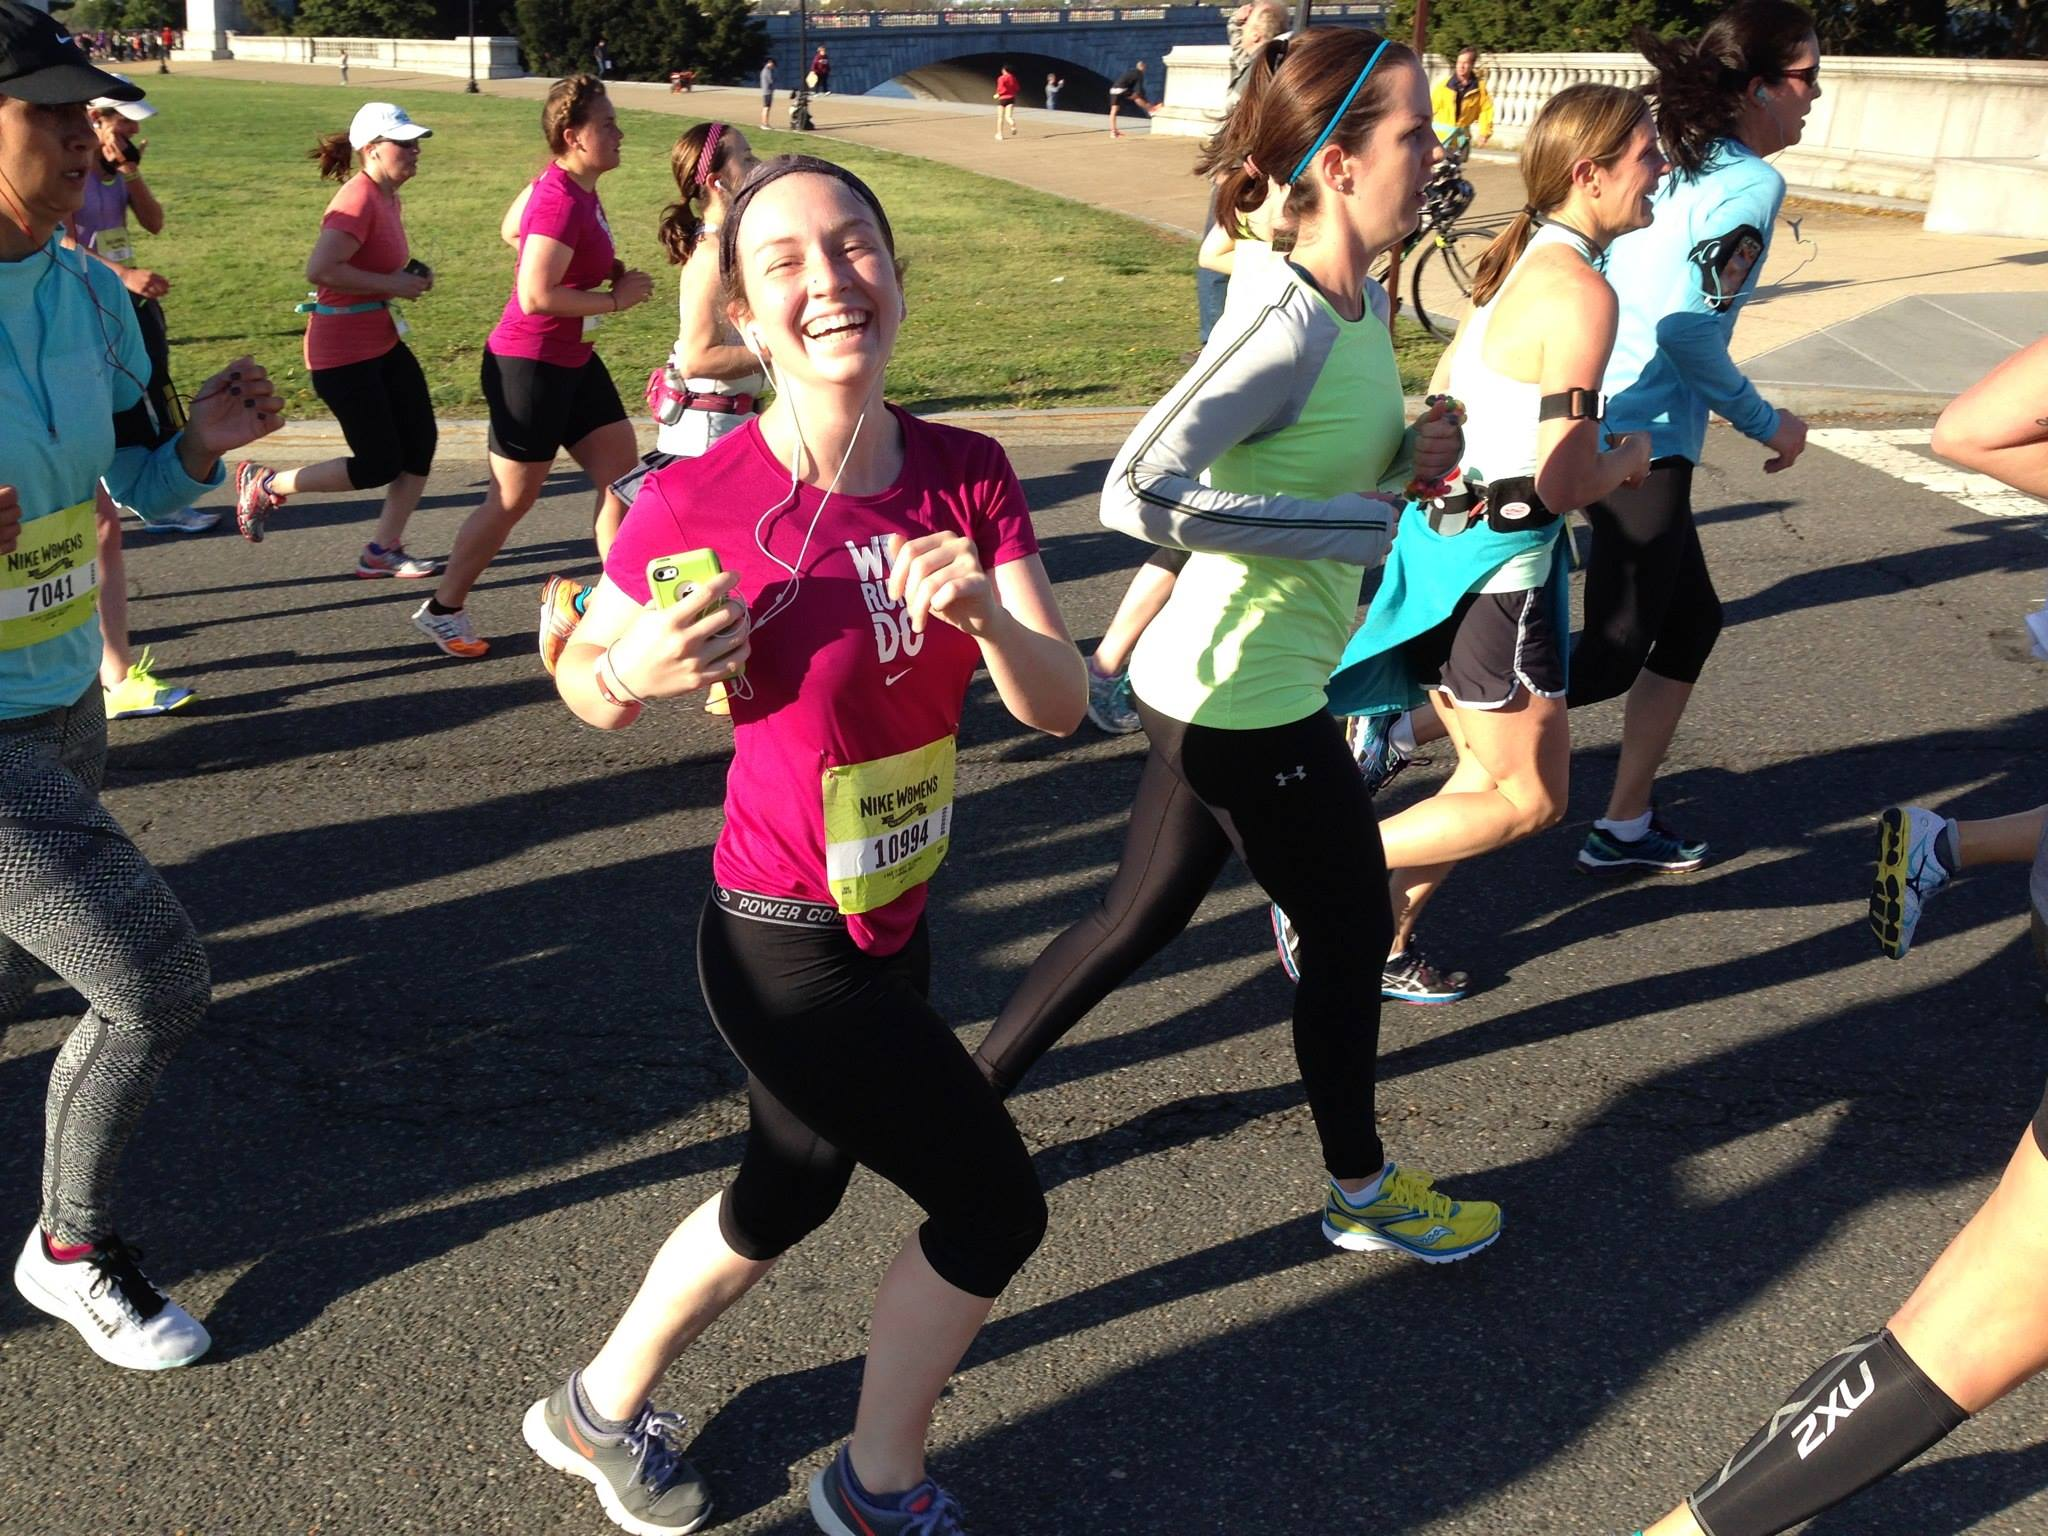 The *perfect* picture of Nike athleticism. (I actually  did have that much fun. #werundc)